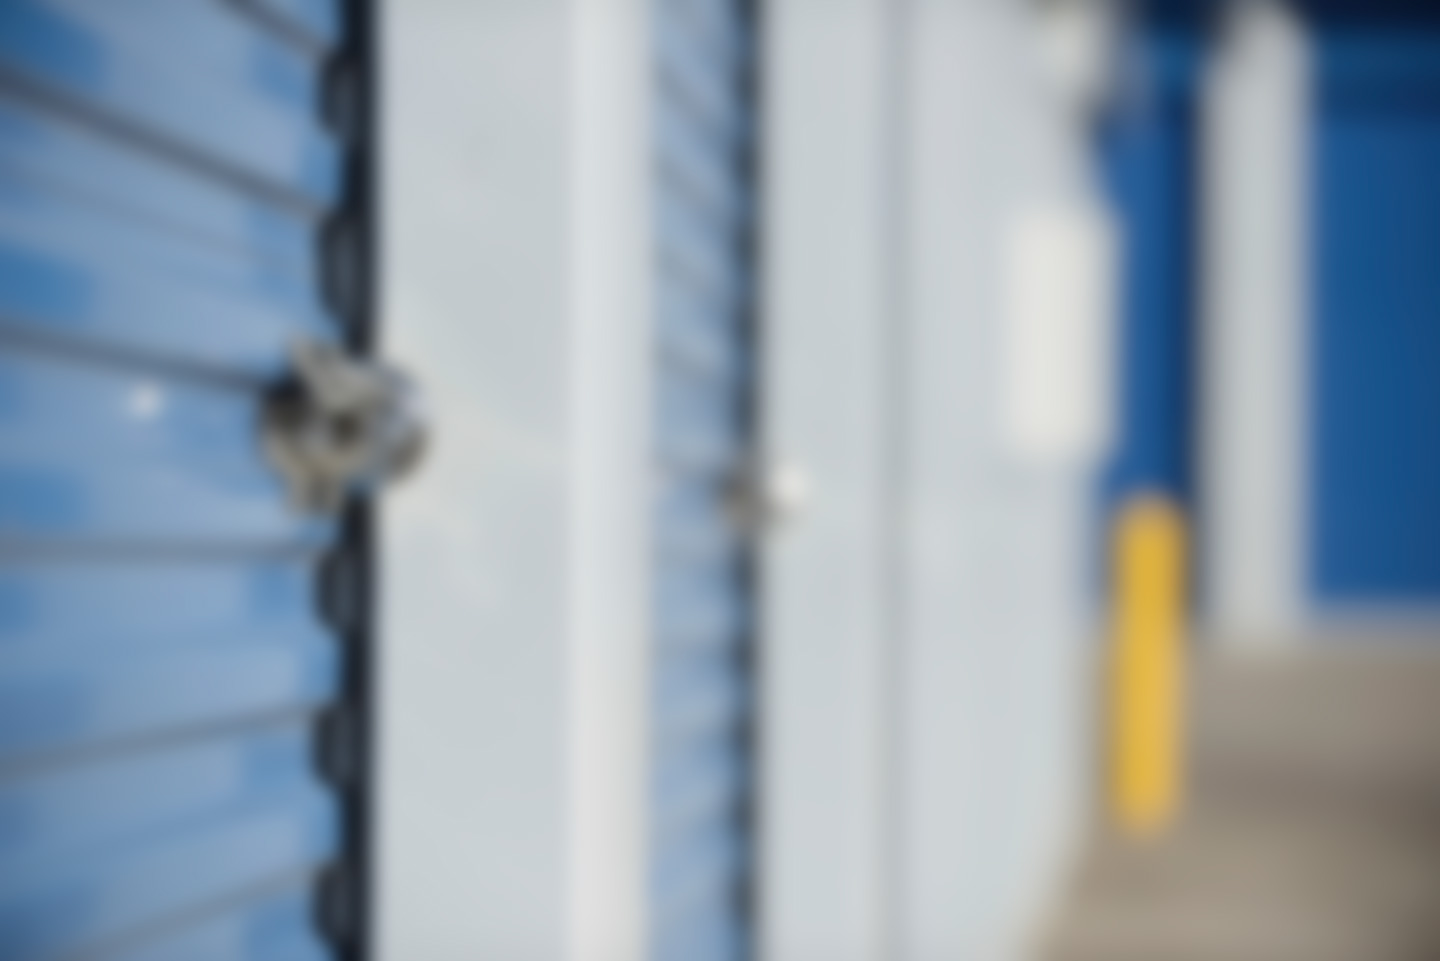 Blurred image of a locked storage unit door